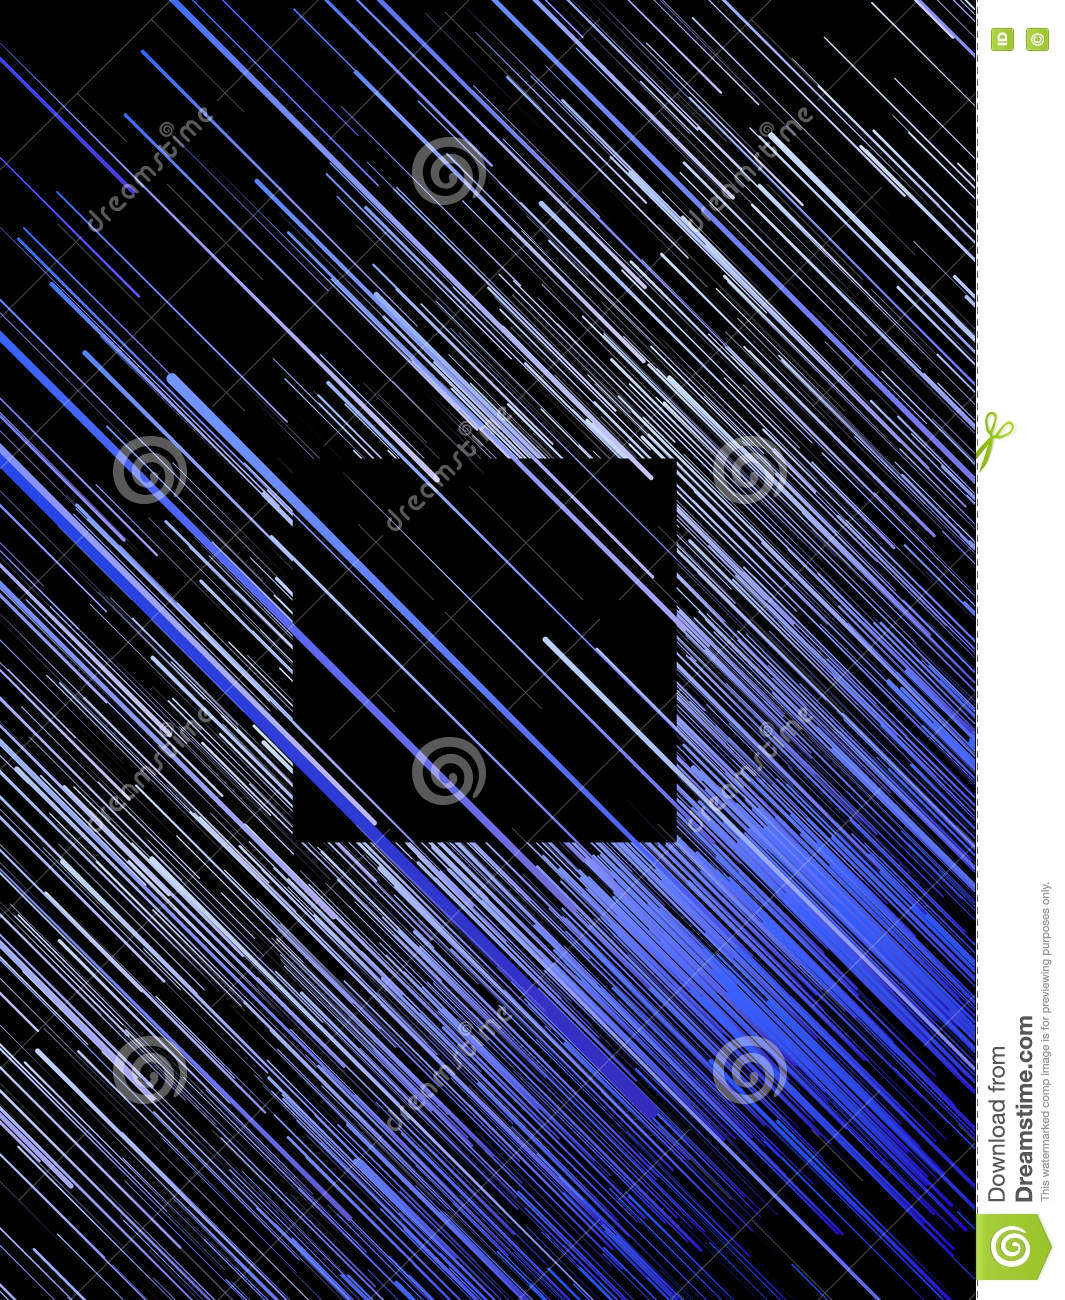 Digital diagonal blue lines abstract background. 3d rendering